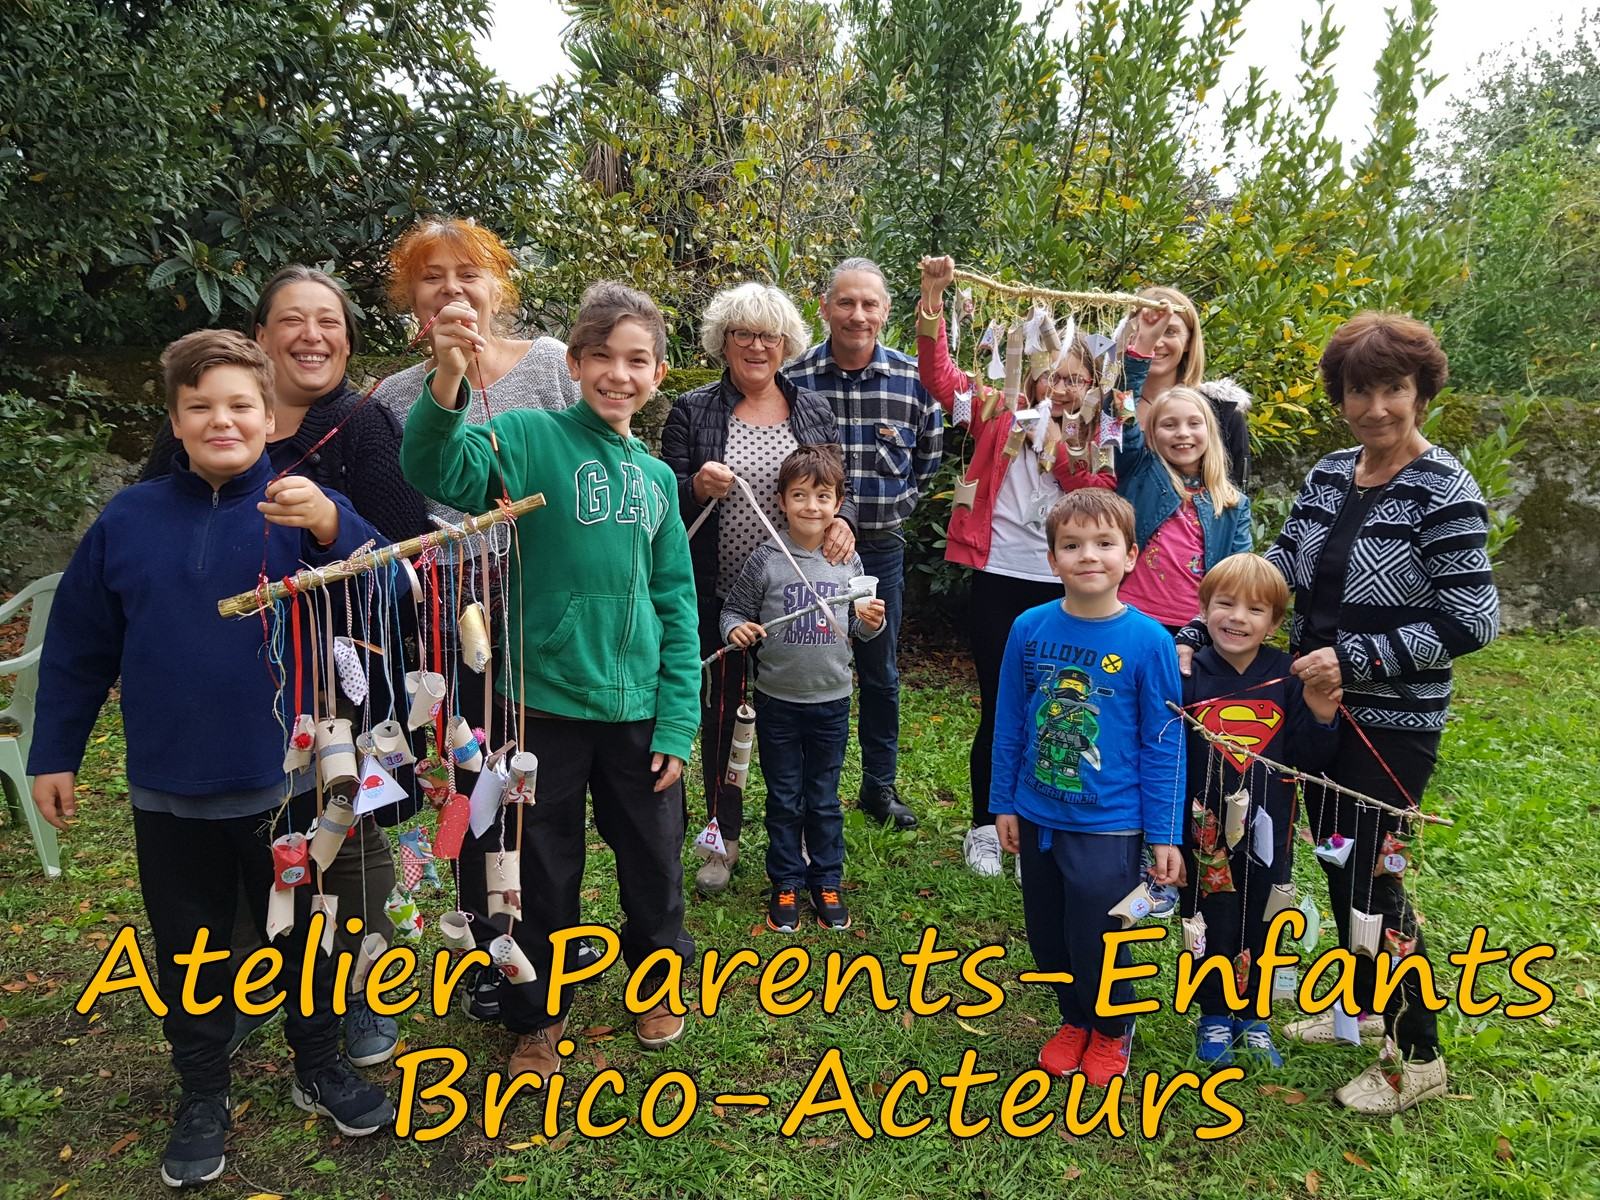 Atelier-Parents-Enfants-Brico-Acteurs